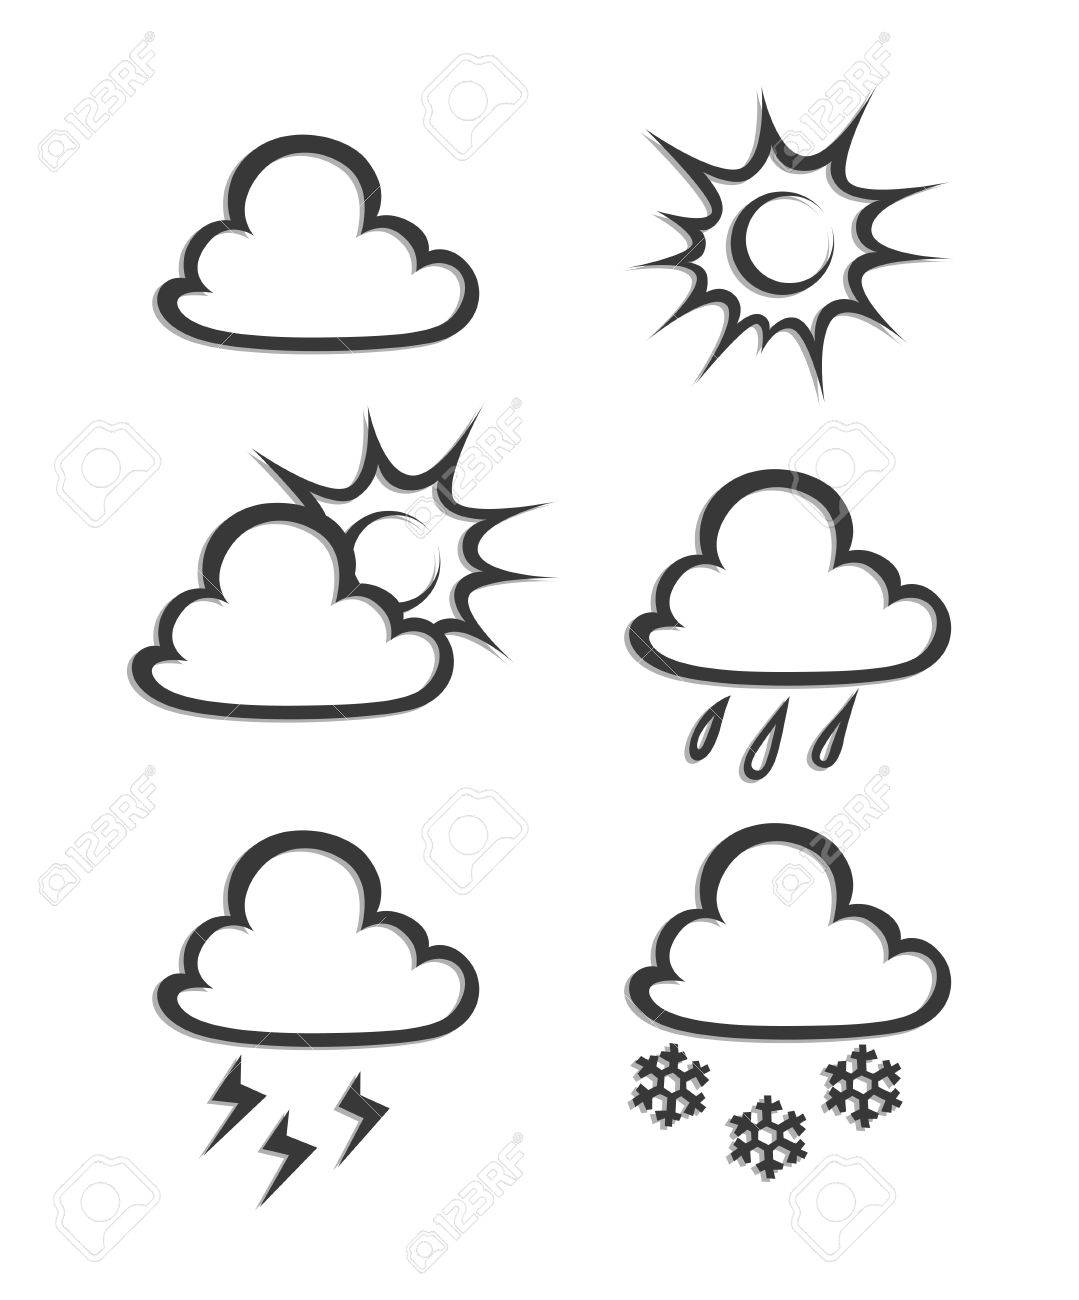 weather icon illustration isolated on white background Stock Vector - 14075311